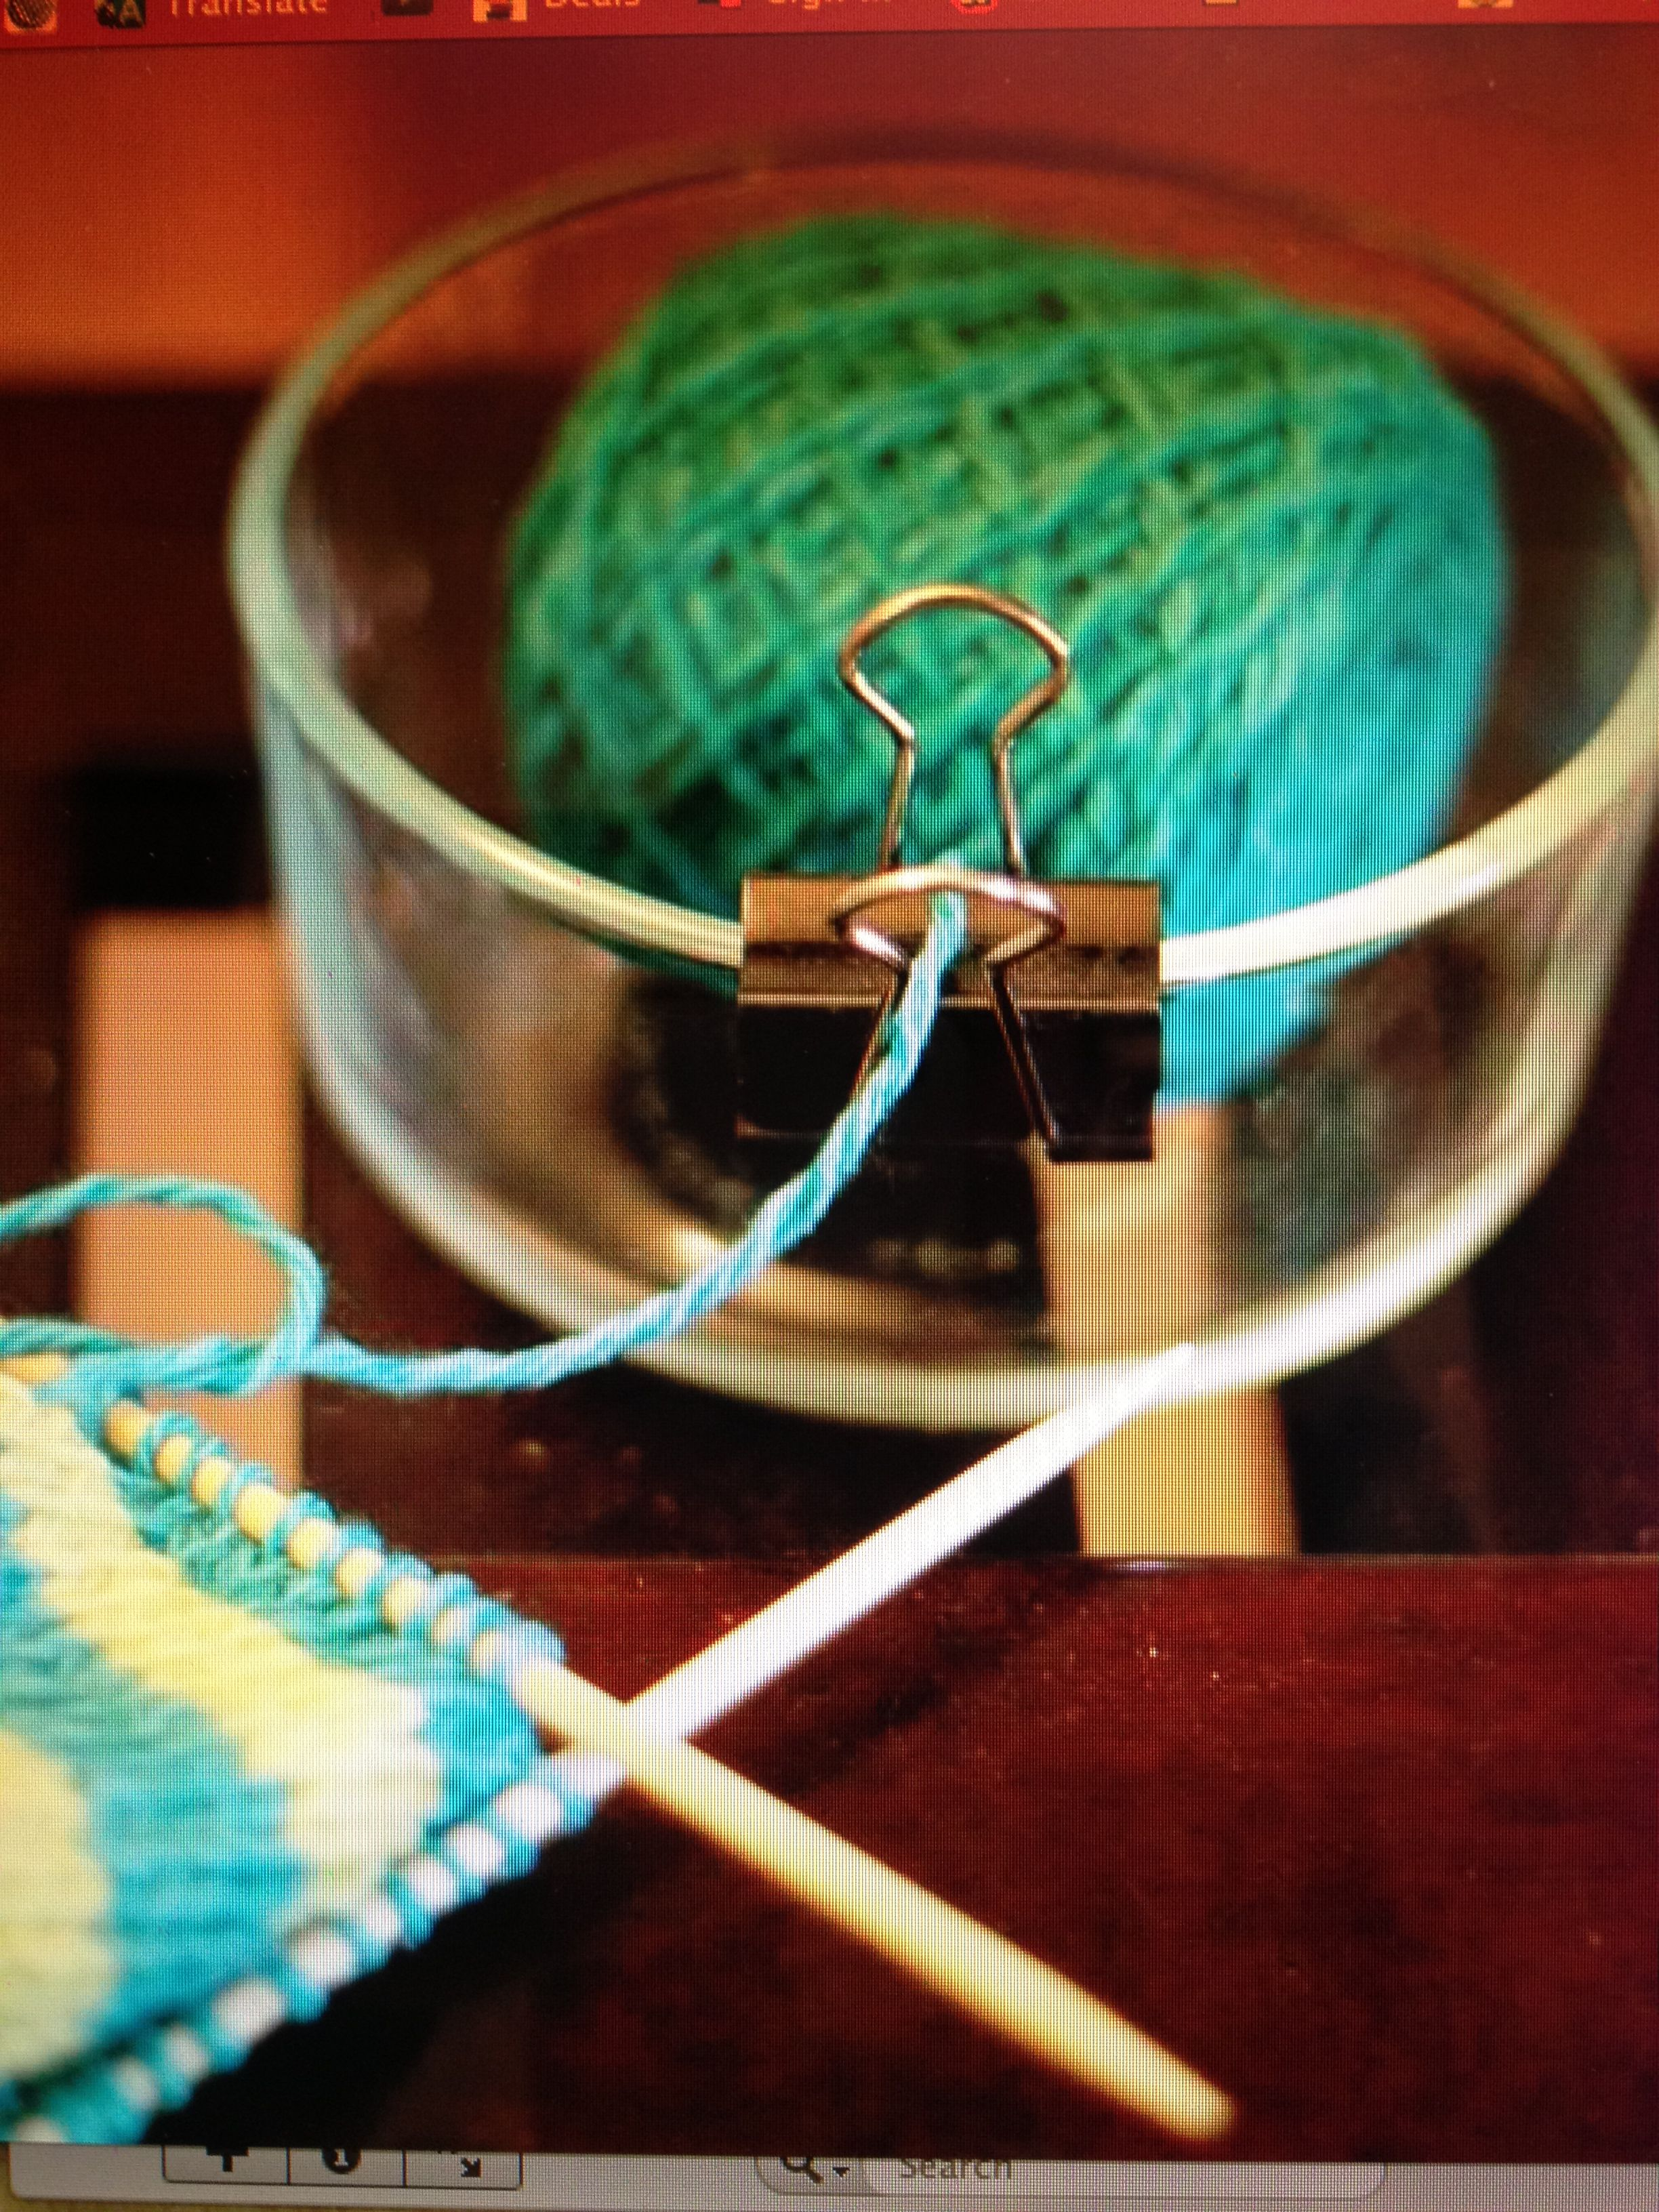 Diy yarn holder pinch the silver clips to pop them out so